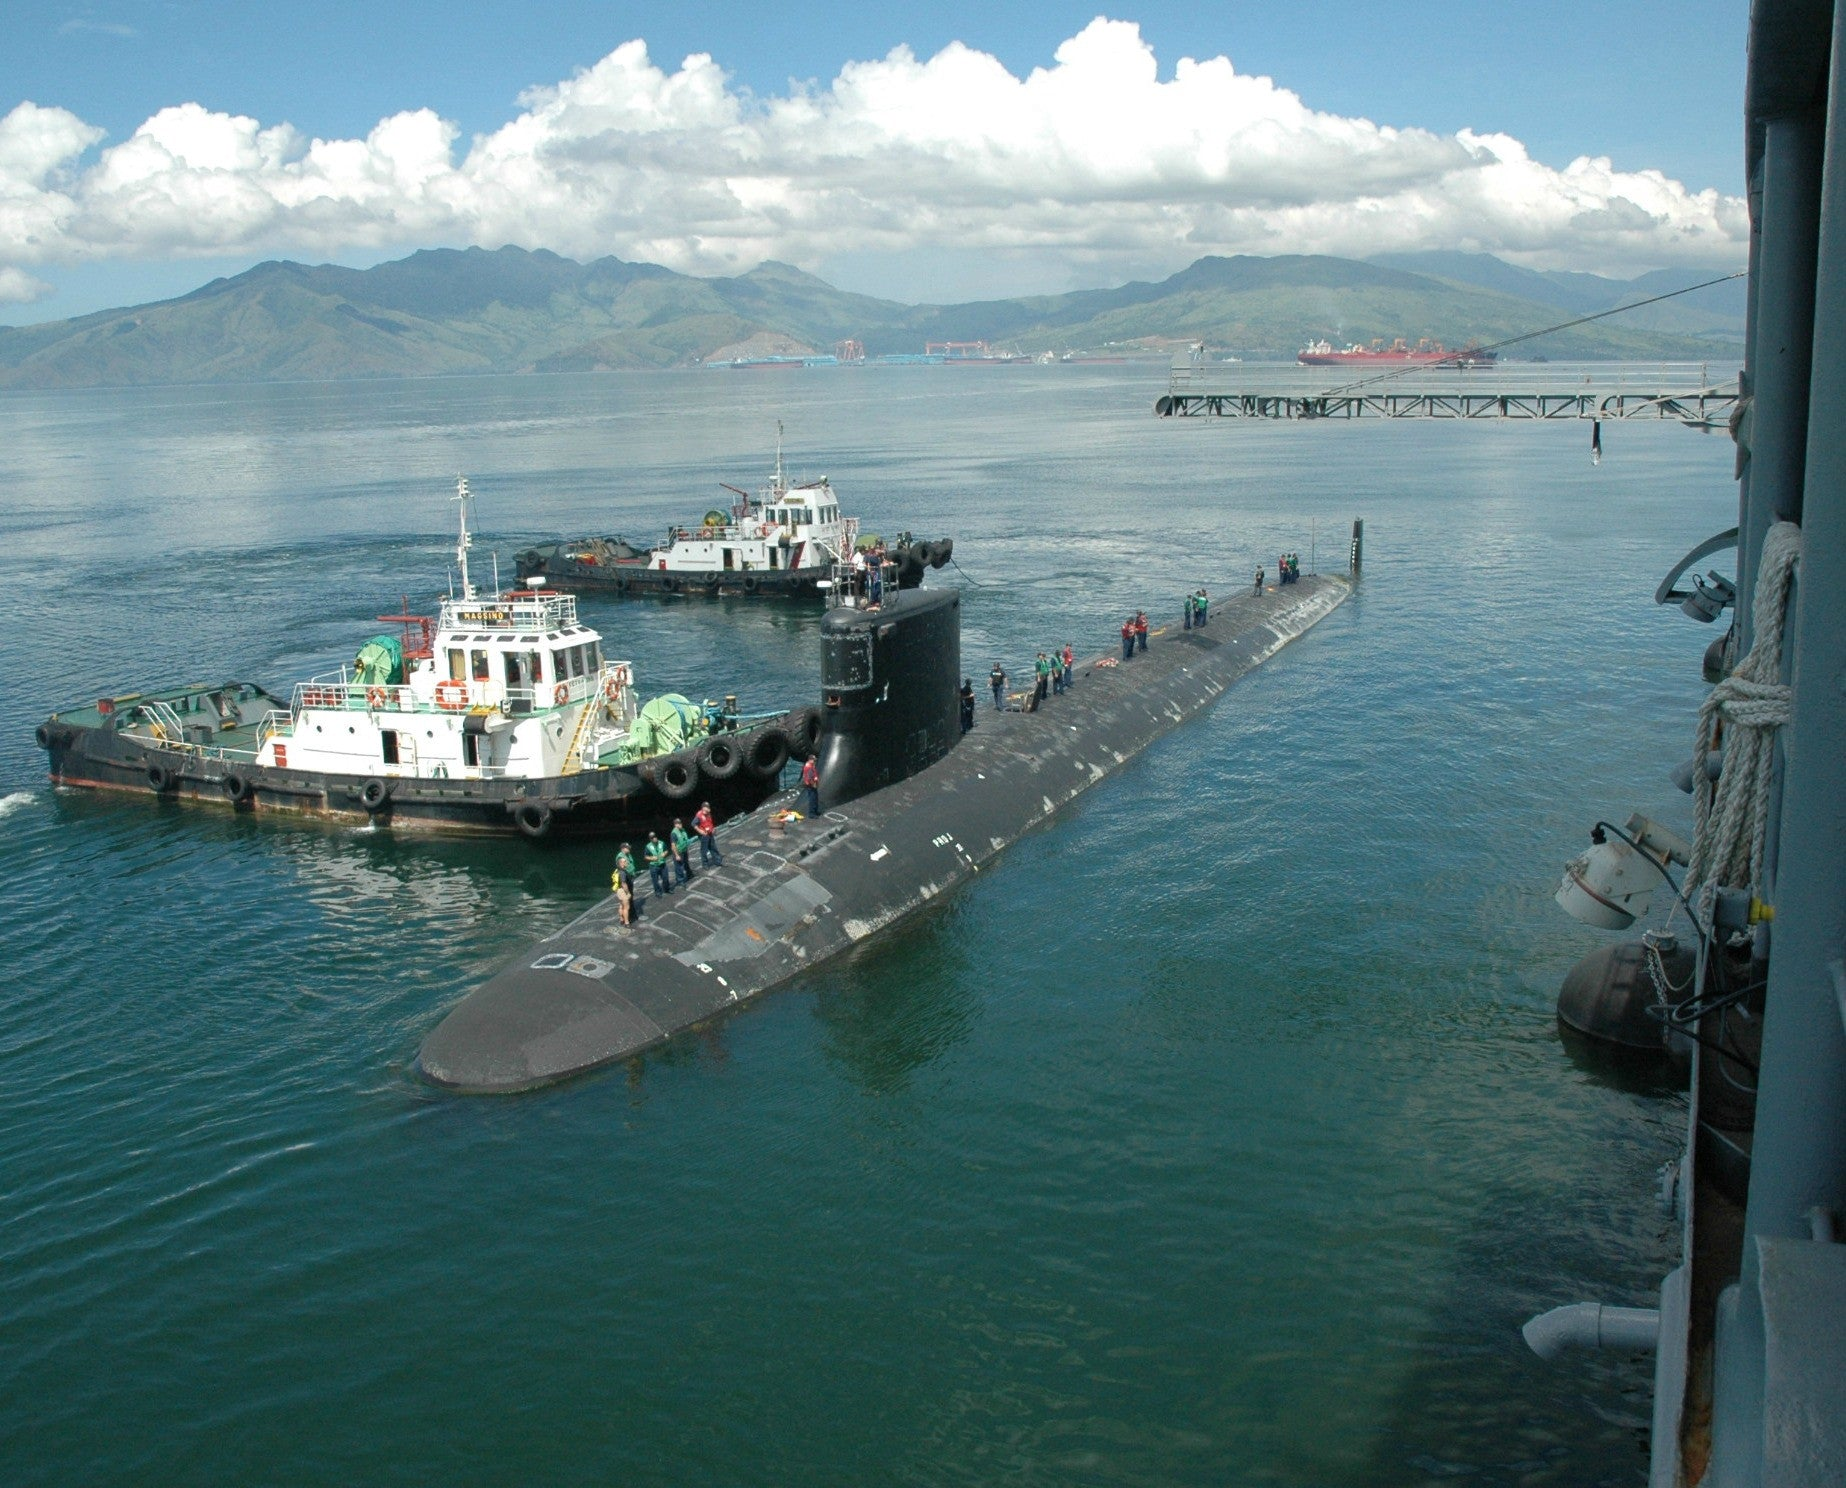 "Submarine USS Hawaii SSN-776 Subic Bay, Philippines September 6, 2012 - 8 x 10"" Photograph"